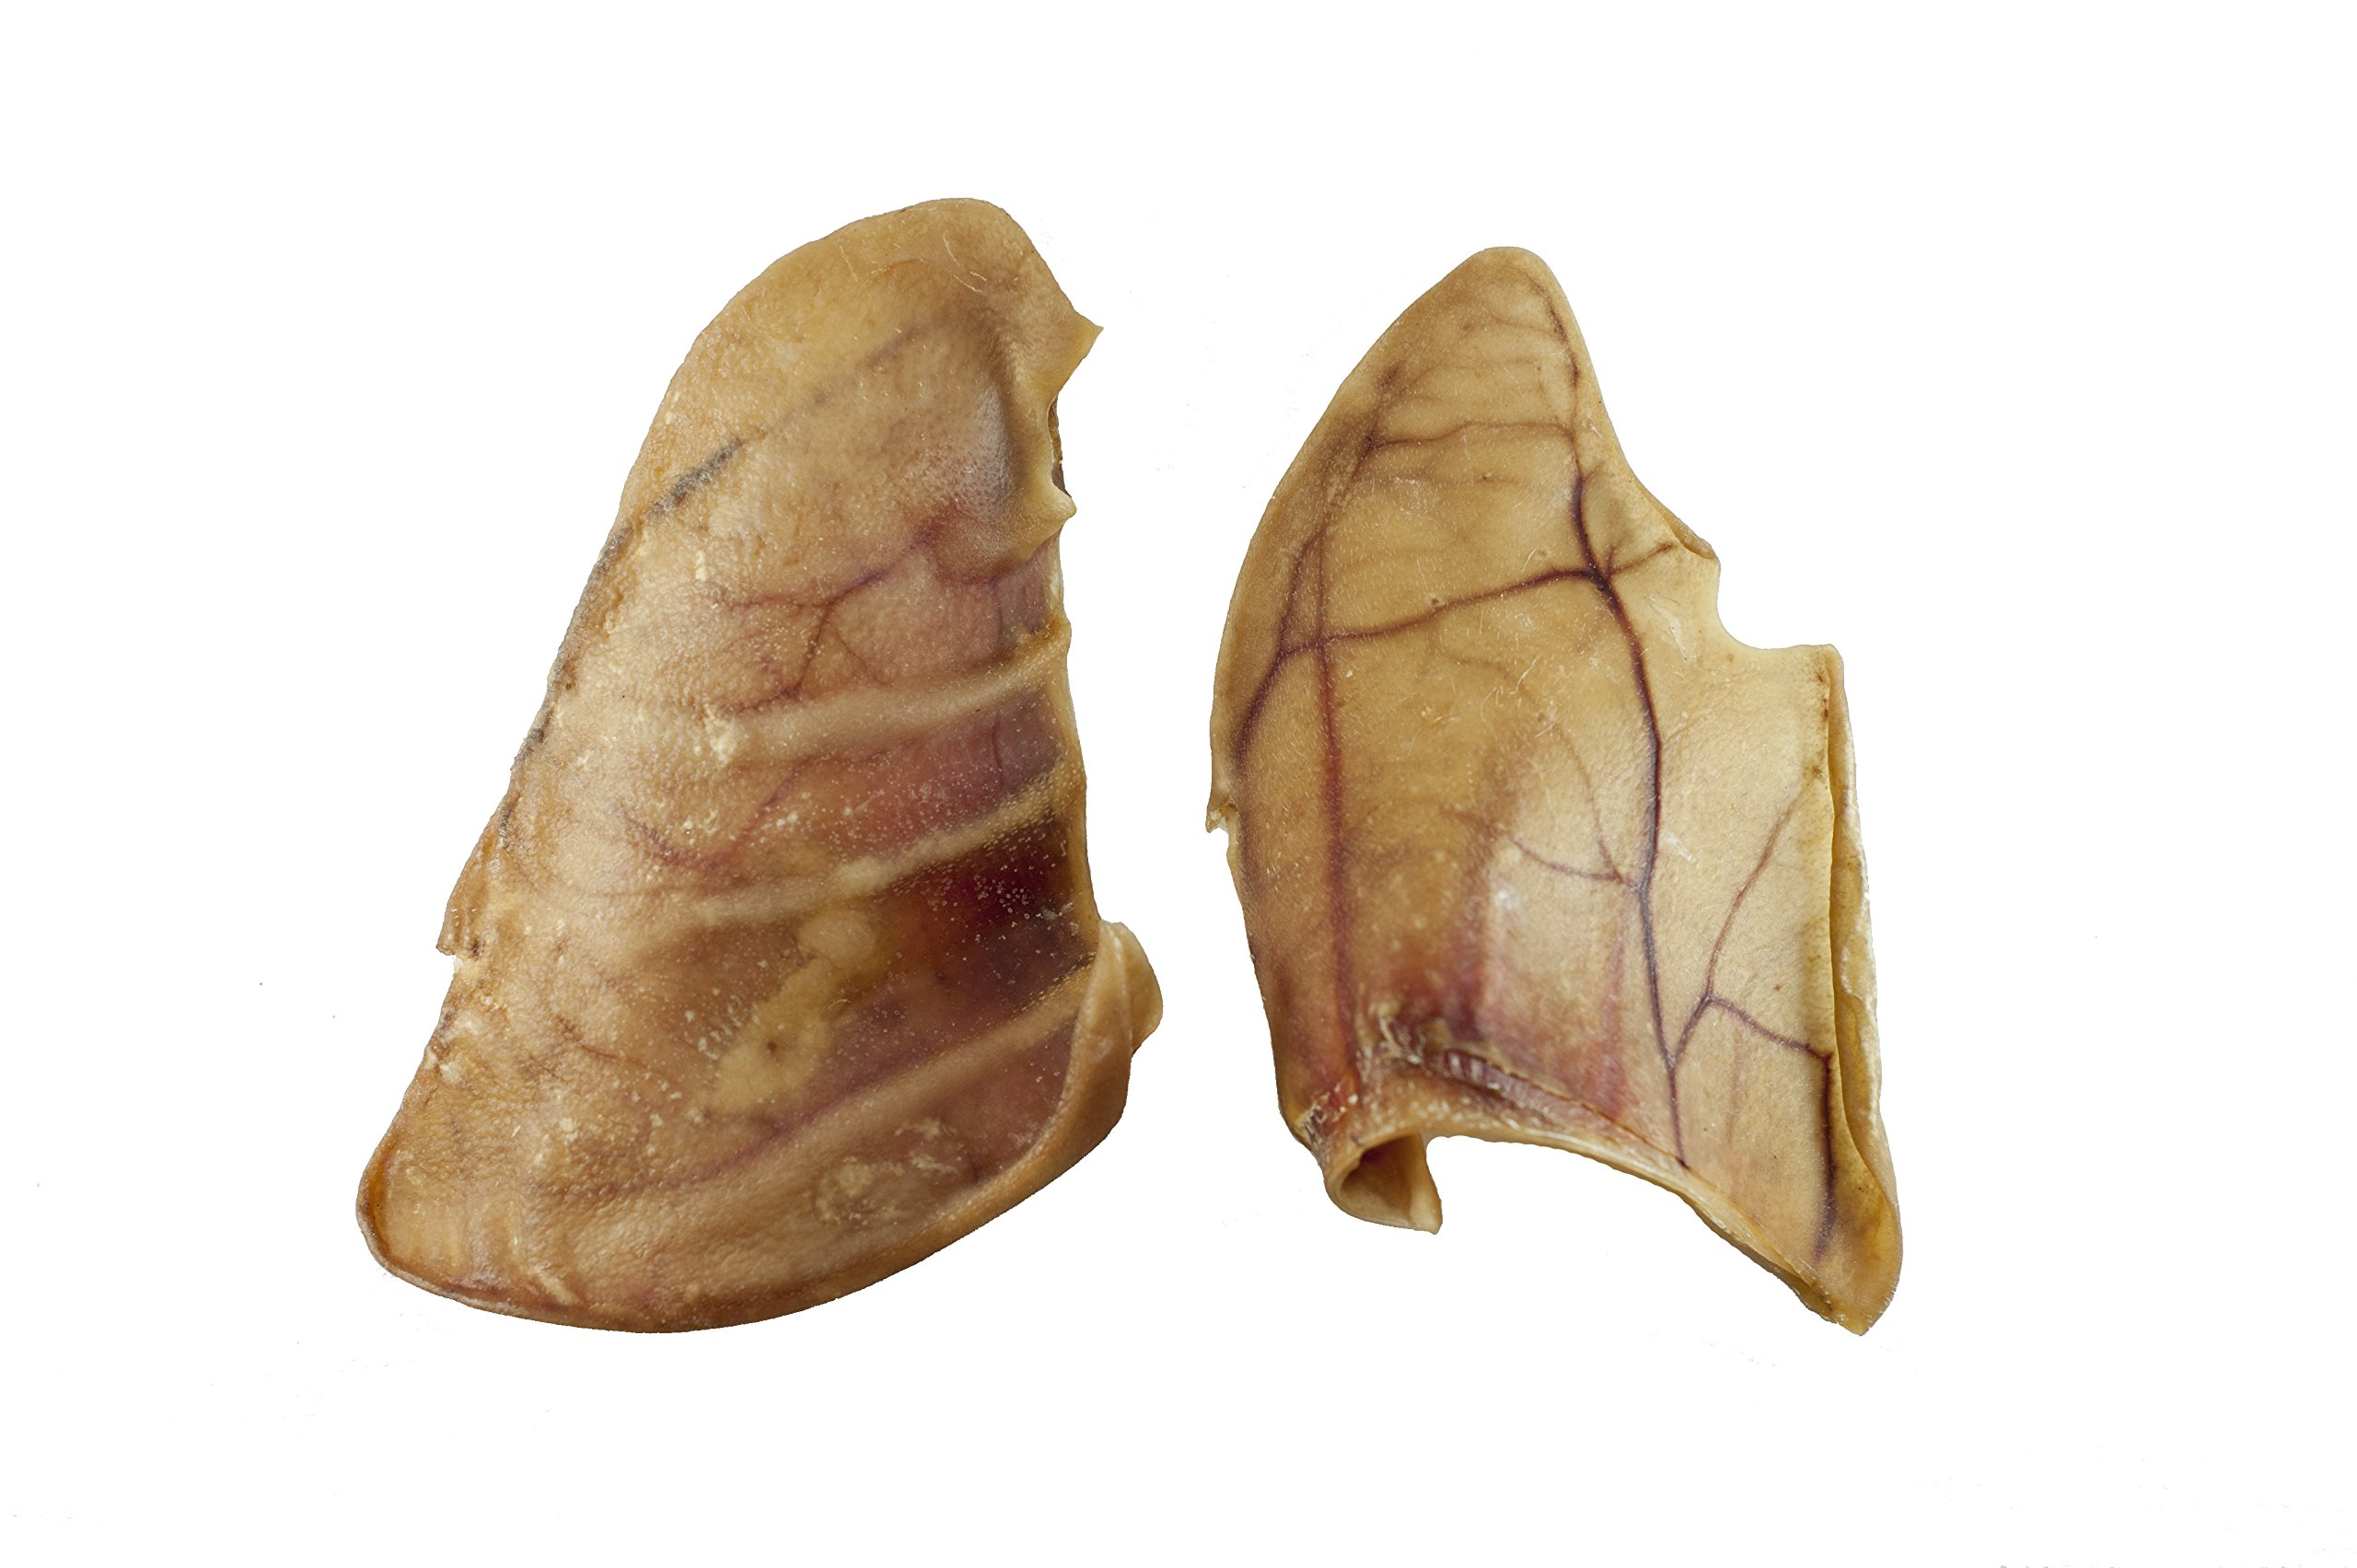 Pig Ears for Dogs | Quality Dog Chews by 123 Treats | 100% Natural Pork Ears Full of Protein for Your Pet (Canada, 100 Count)